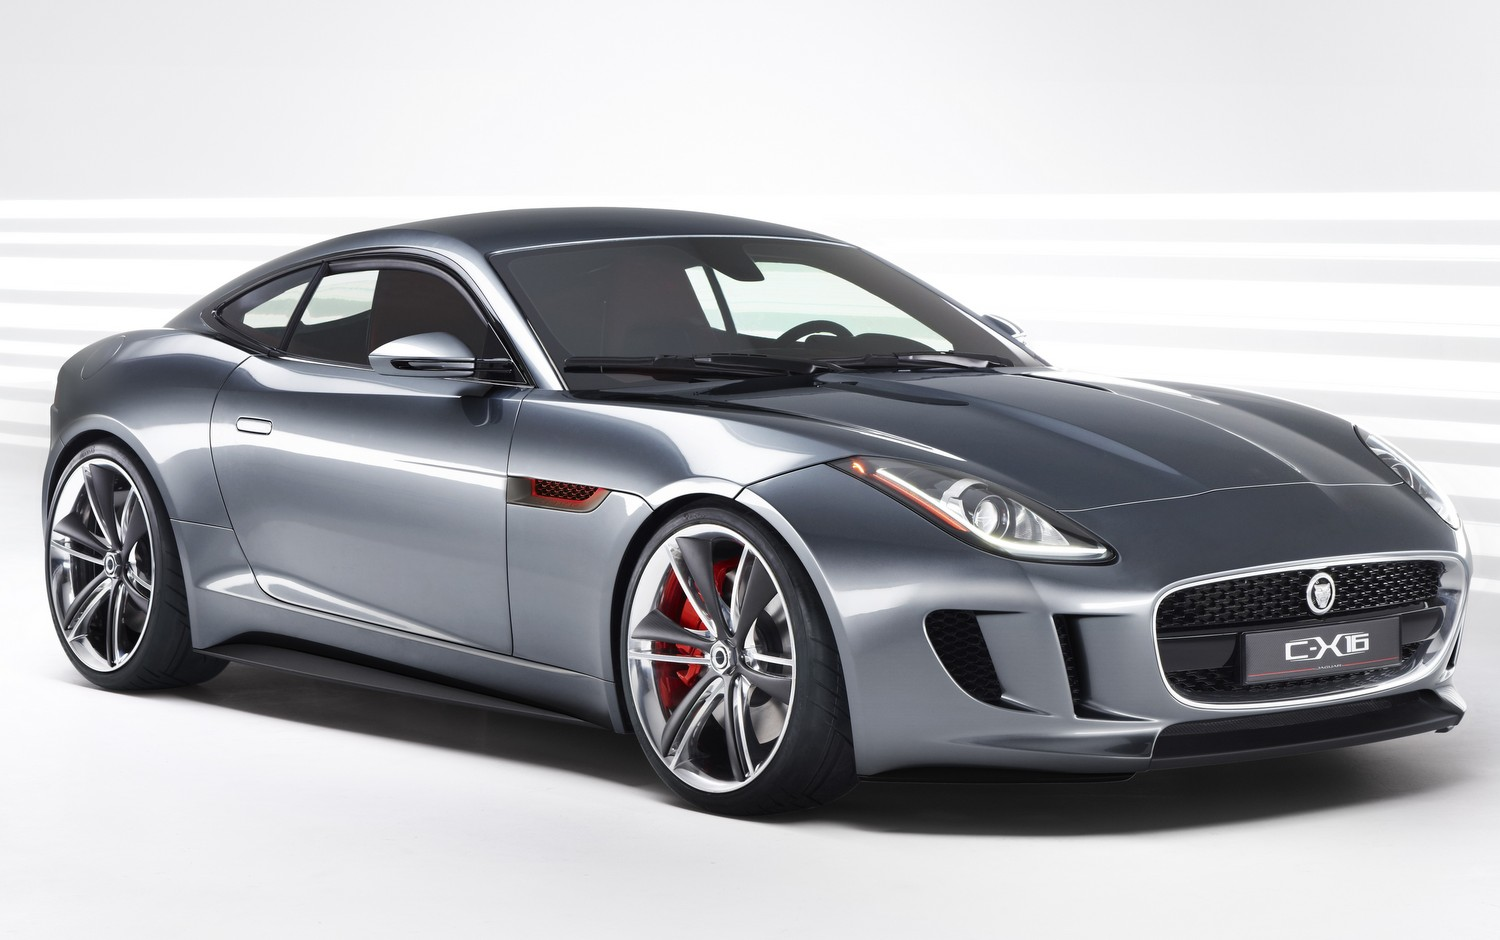 new jaguar c-x16 sport